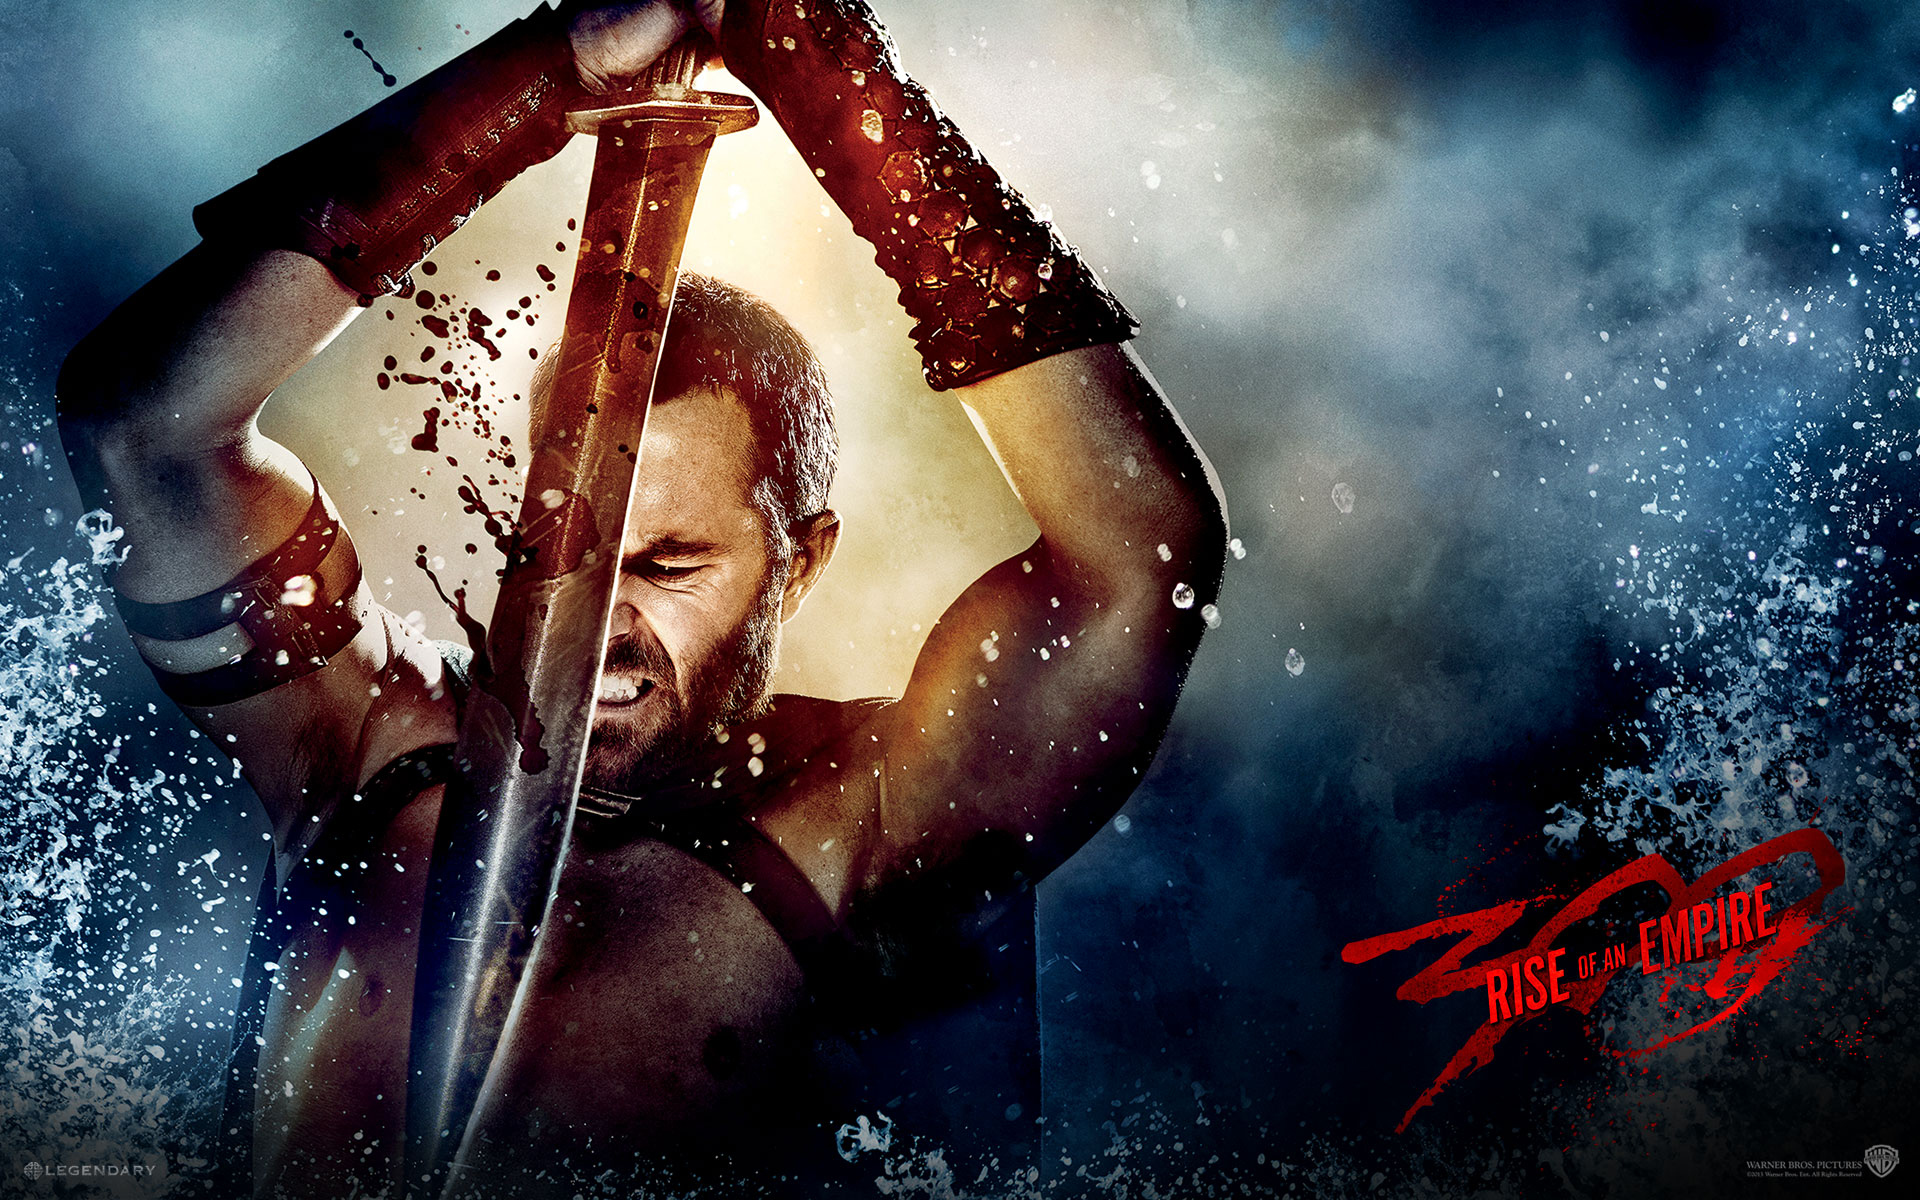 sullivan stapleton as themistocles 300 rise of an empire movie 2014 hd ...